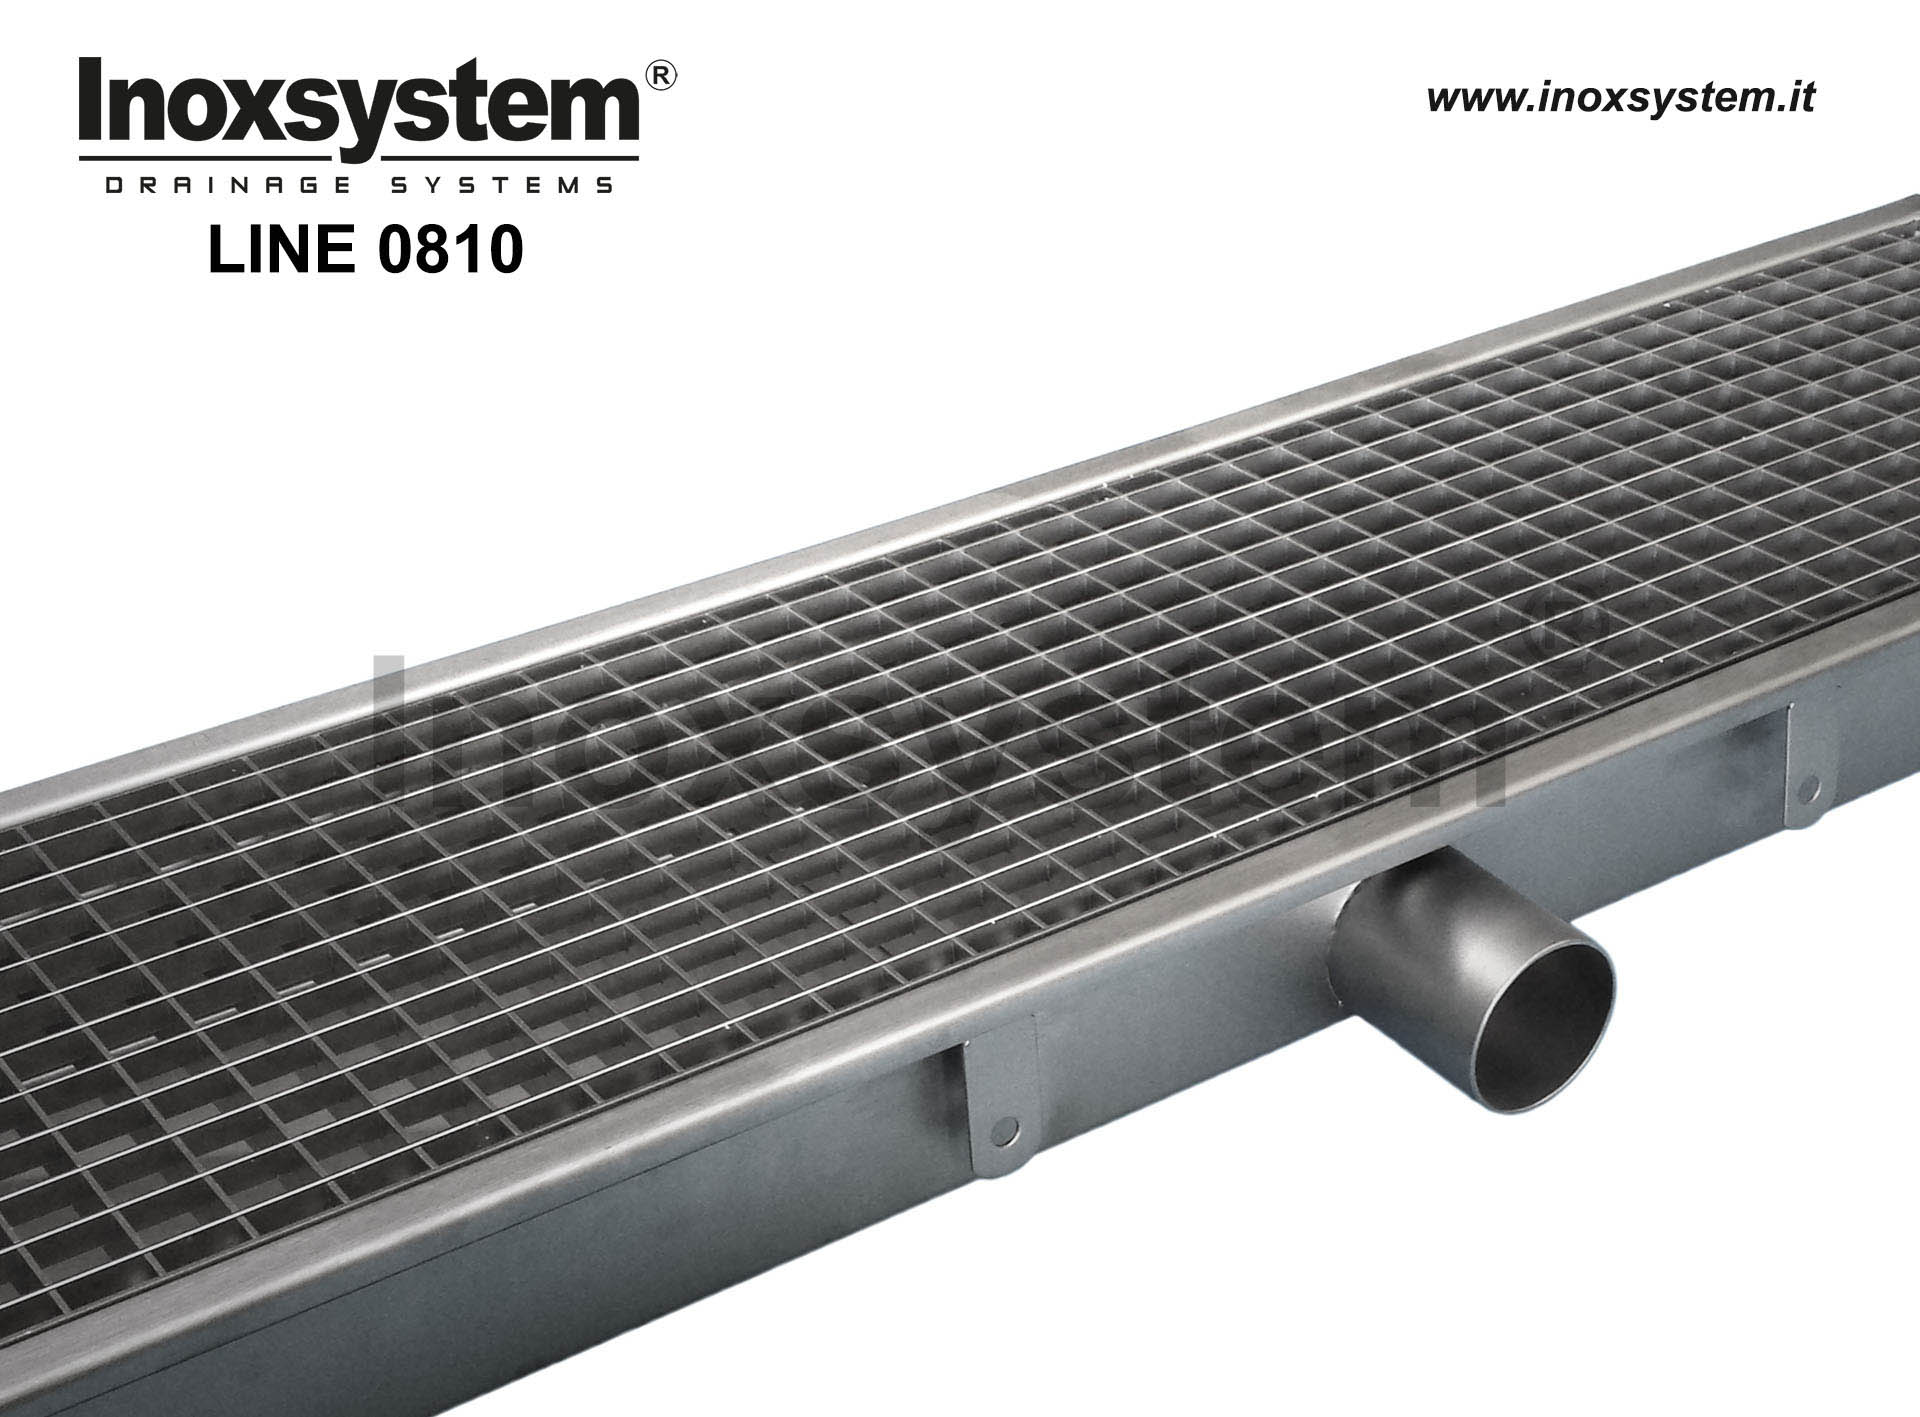 Standard stainless steel grating channel with direct outlet pipe no-siphoned Ø 63 mm and removable filter basket LINE 0810